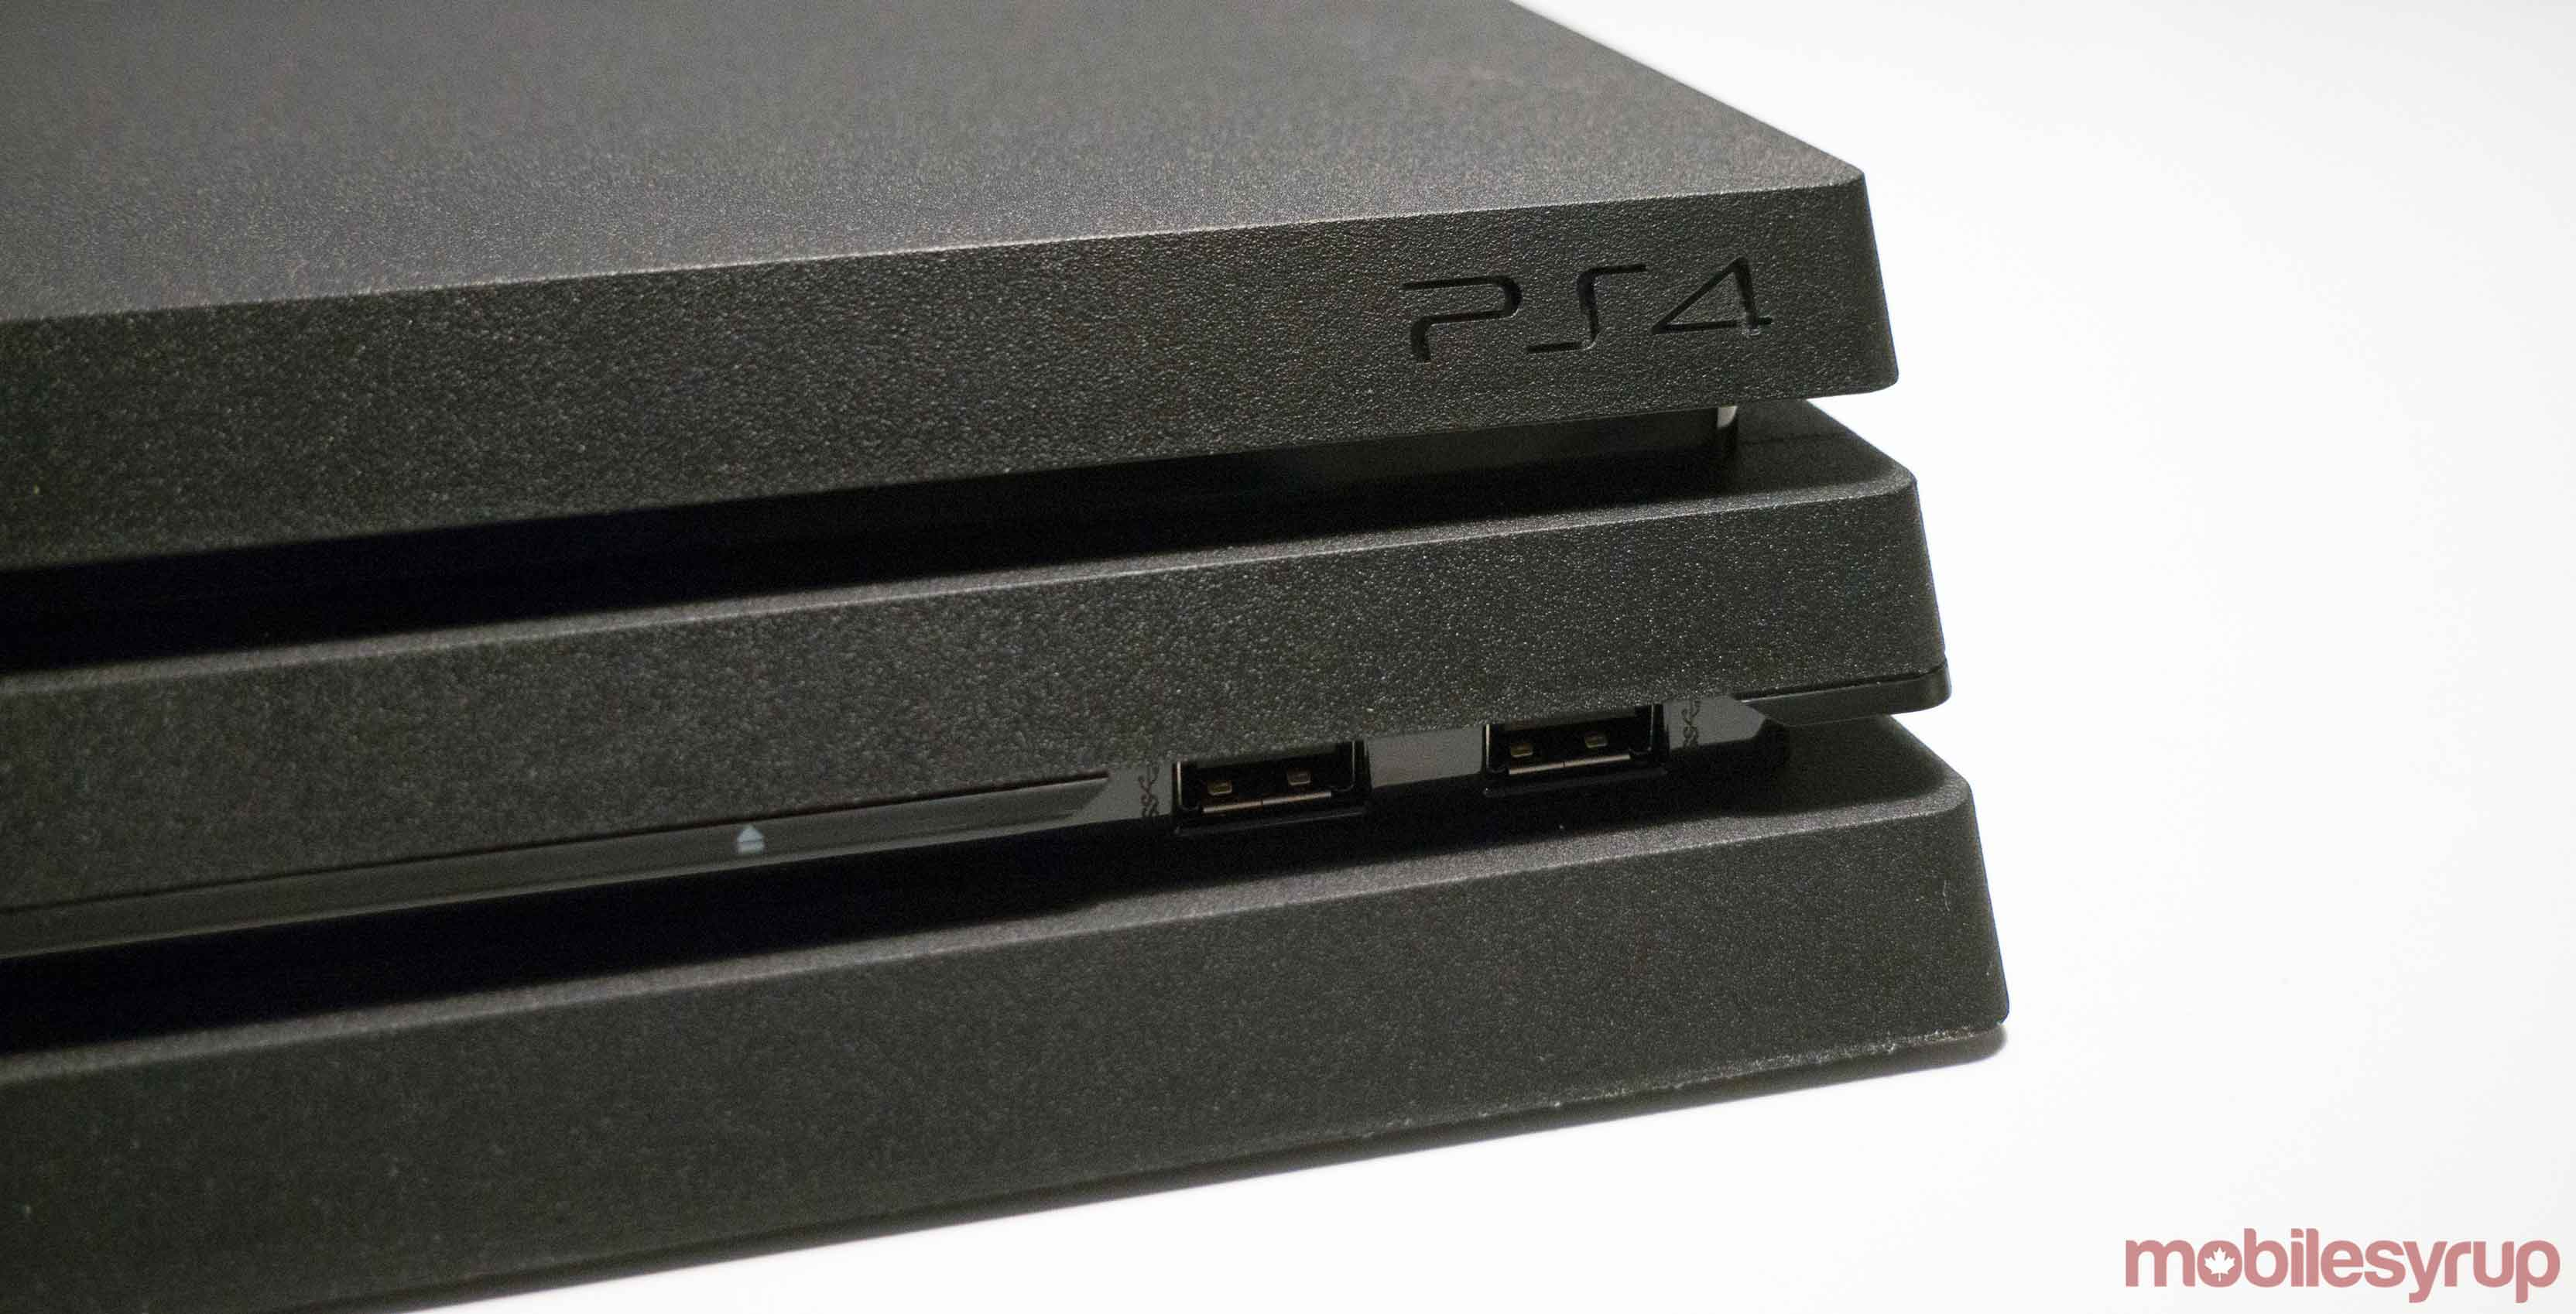 PlayStation 5 unlikely to be released before 2020